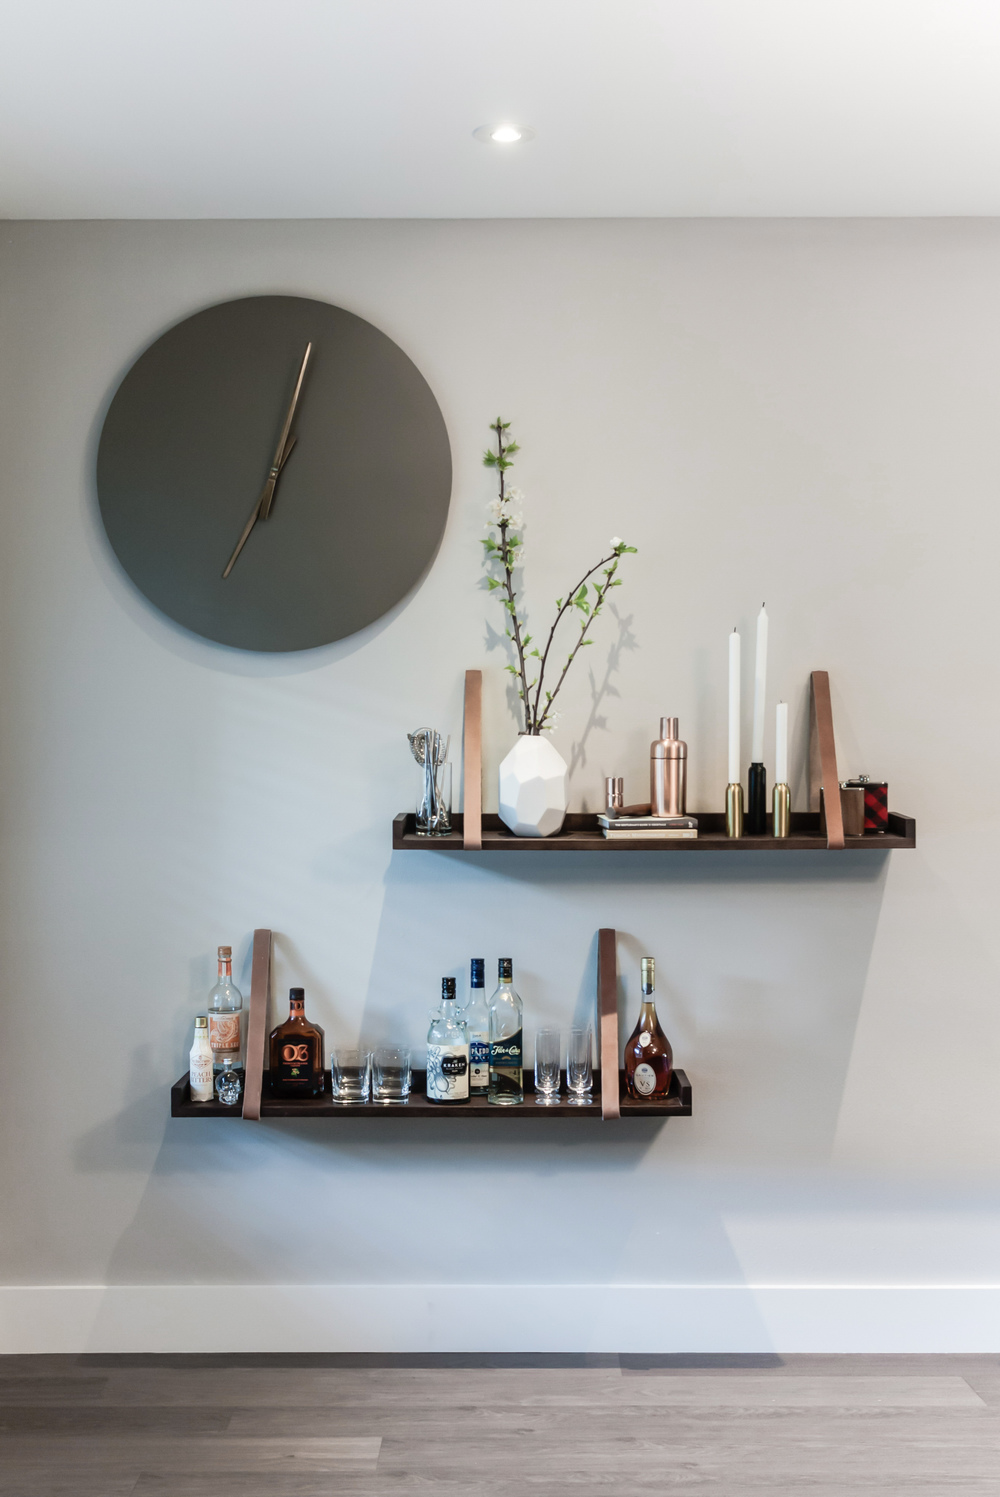 Home remodel; wall decor; shelving; clock | Interior Designer: Matt Tsang